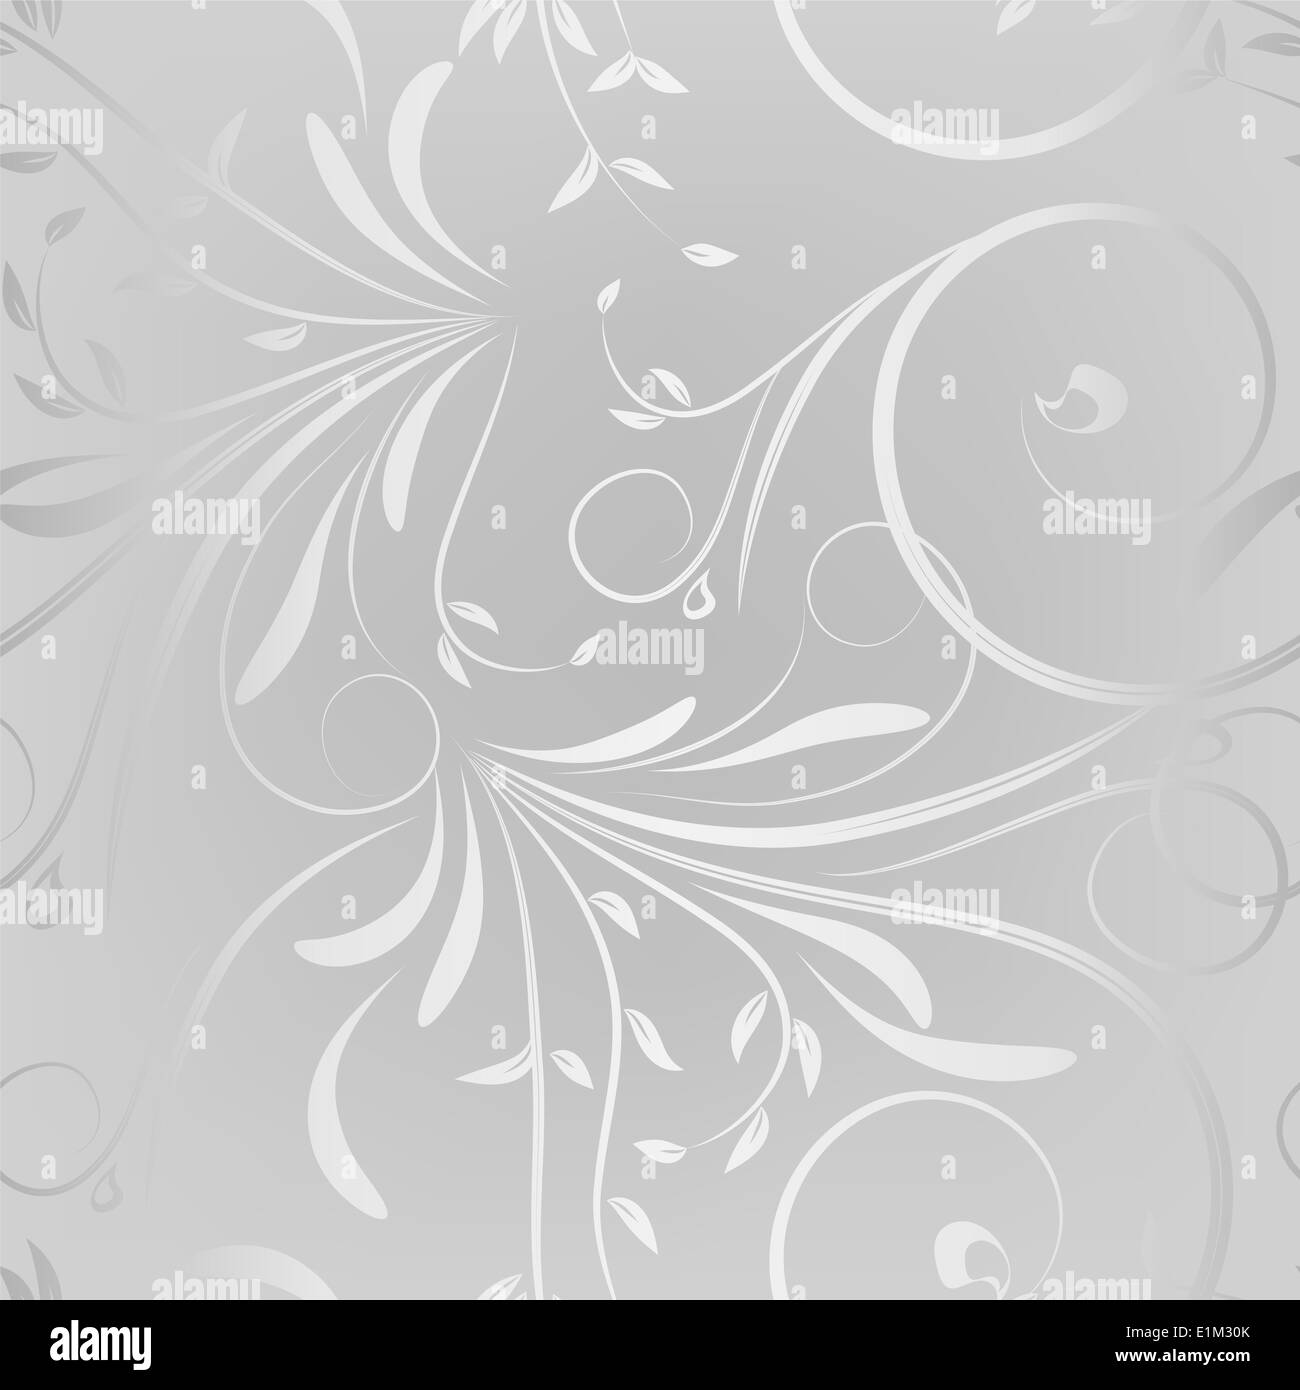 Silver Floral Wallpaper Stock Photo 69897539 Alamy